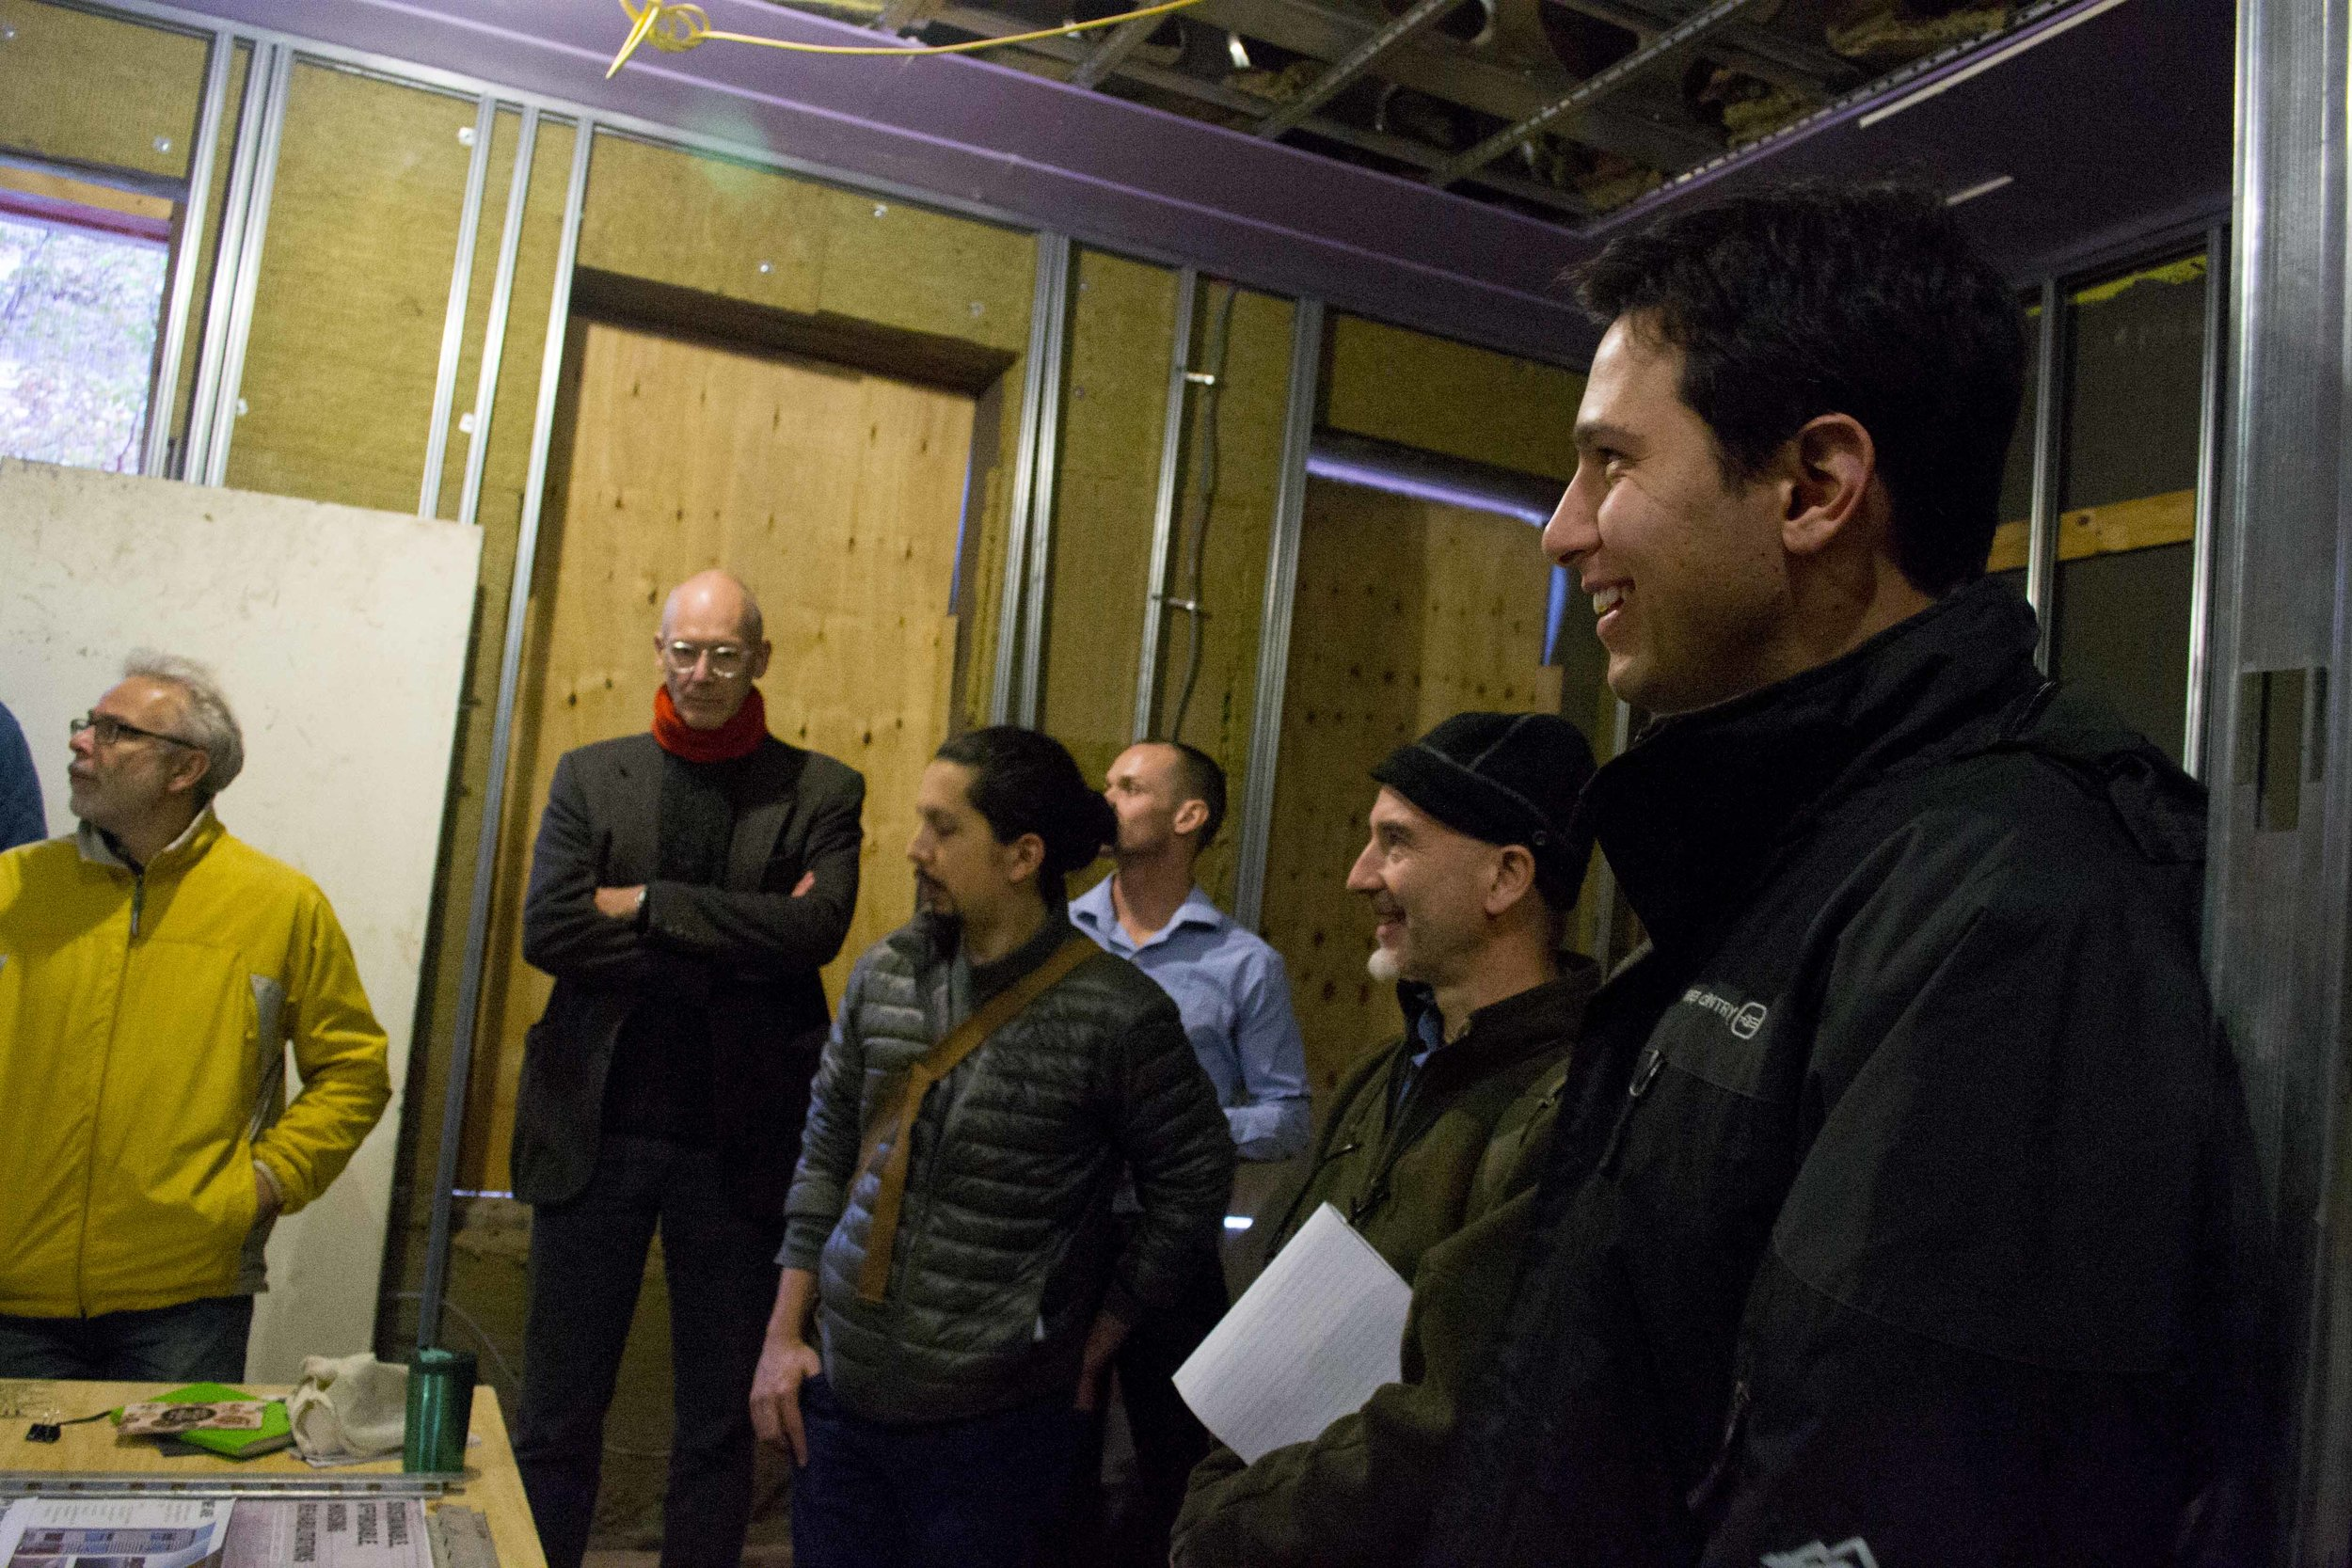 20161111__NY PASSIVE HOUSE DAYS_OPEN HOUSE_PAUL CASTRUCCI ARCHITECT__0095_lowres.jpg